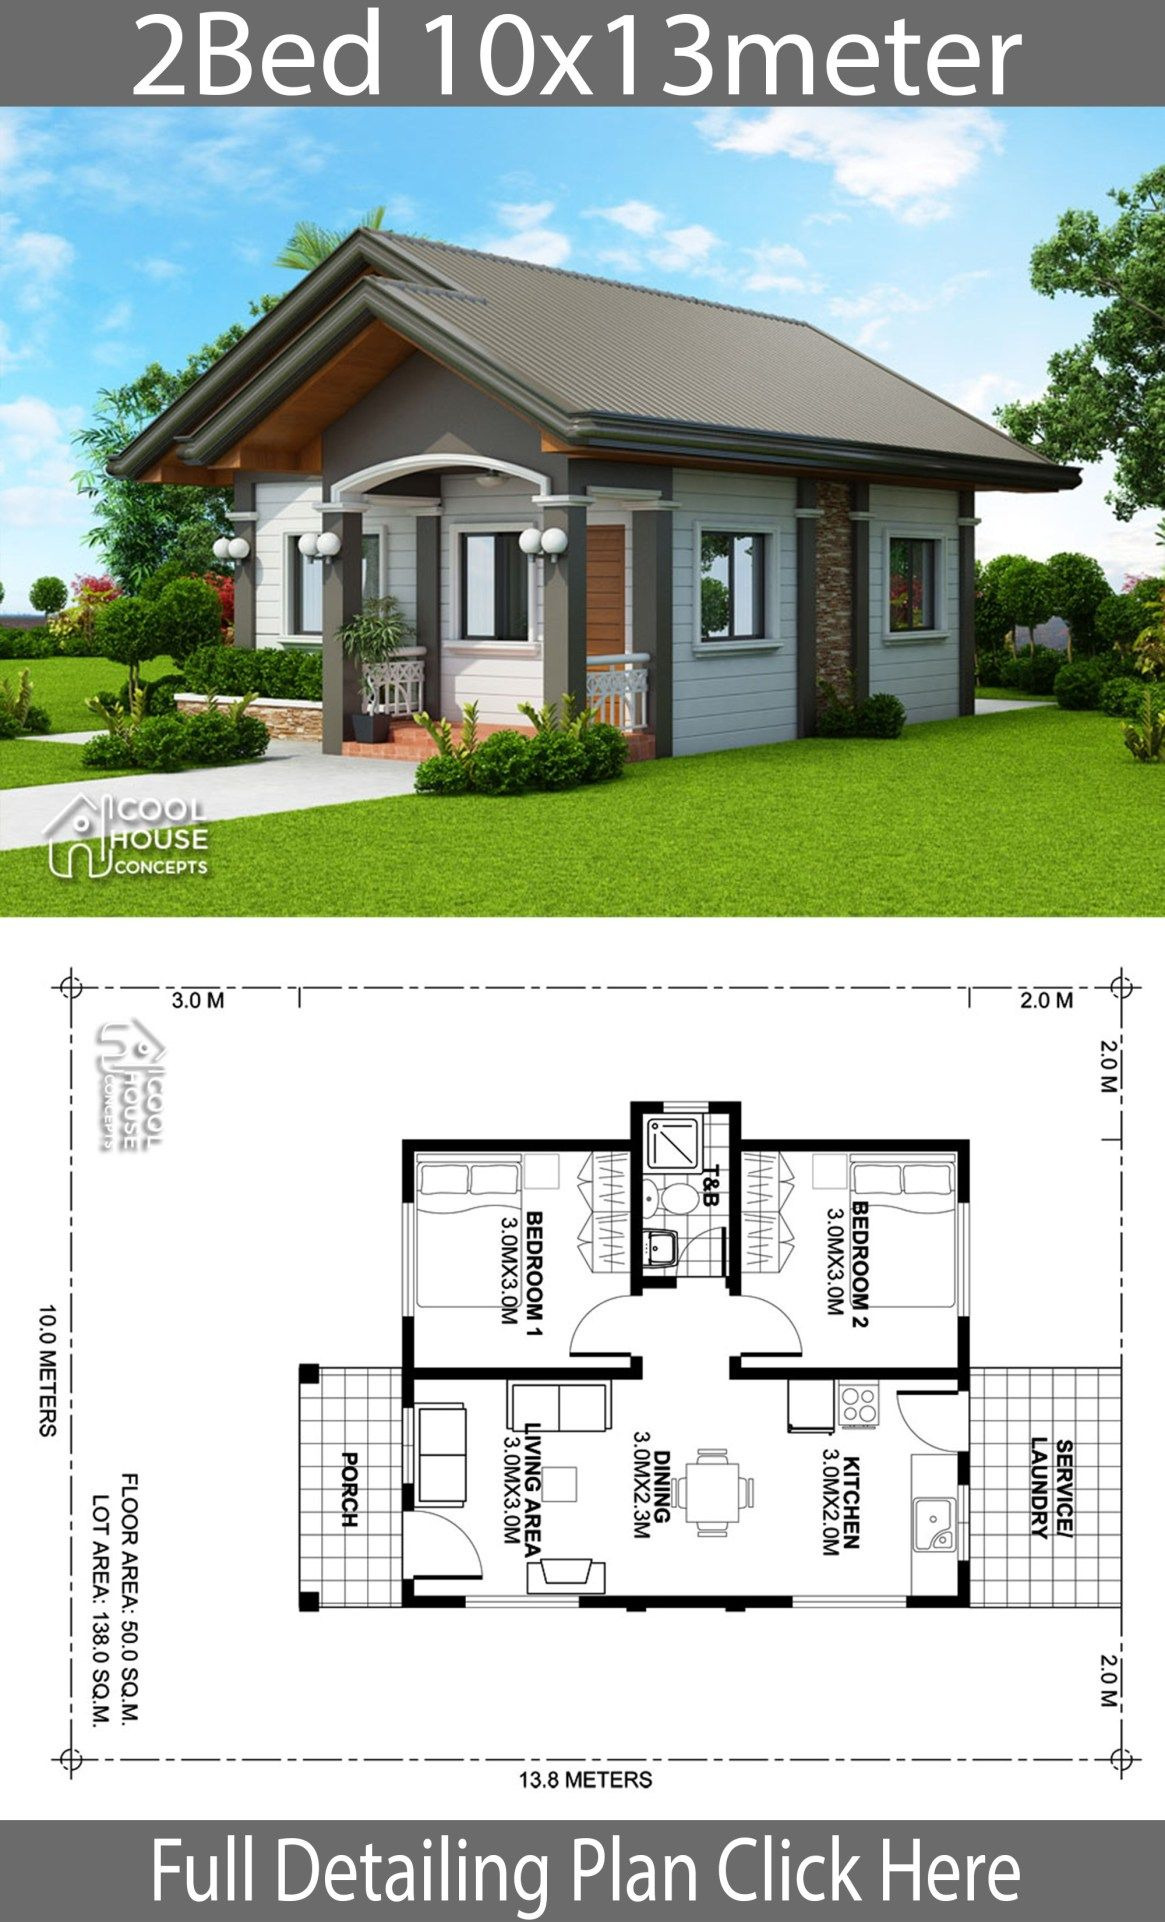 Small House Designs and Floor Plans Lovely Home Design Plan 10x13m with 2 Bedrooms